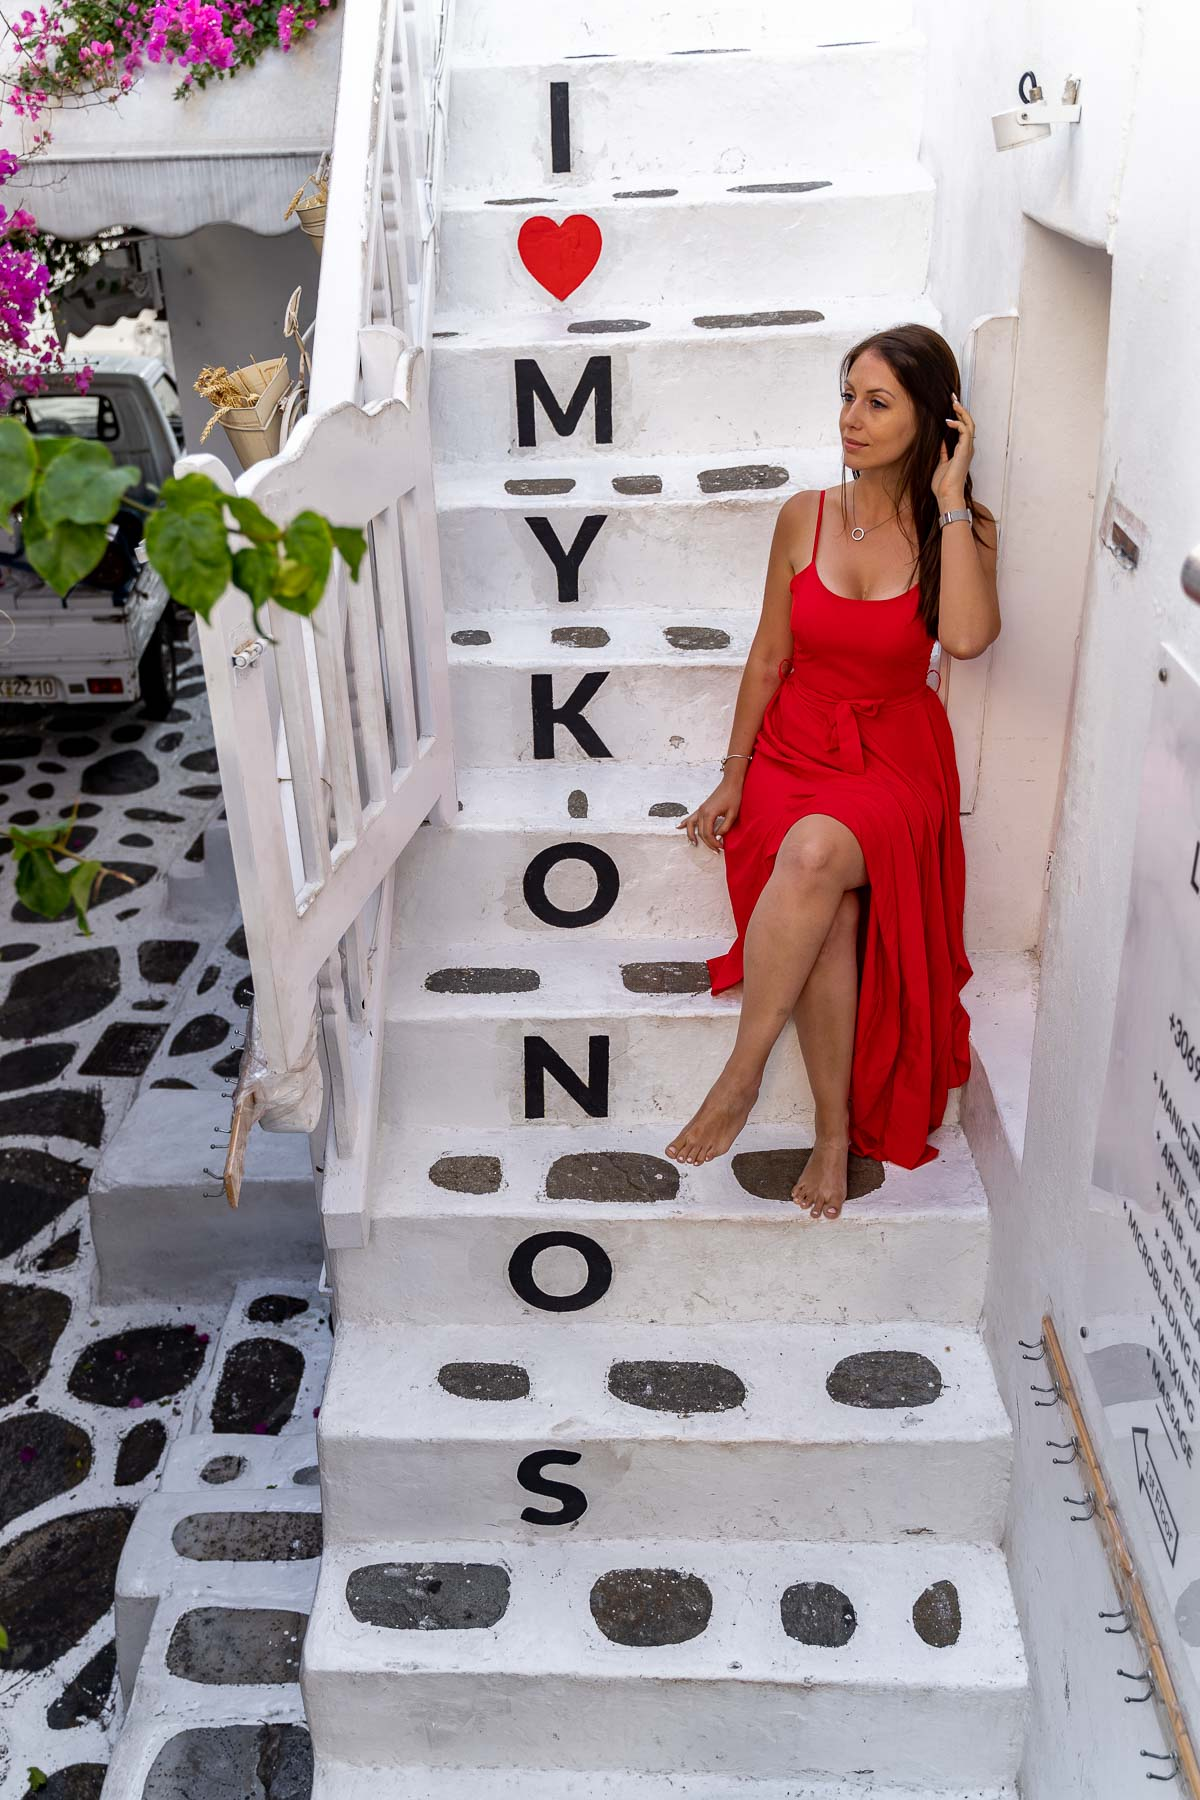 Girl in a red dress sitting on the I Love Mykonos stairway